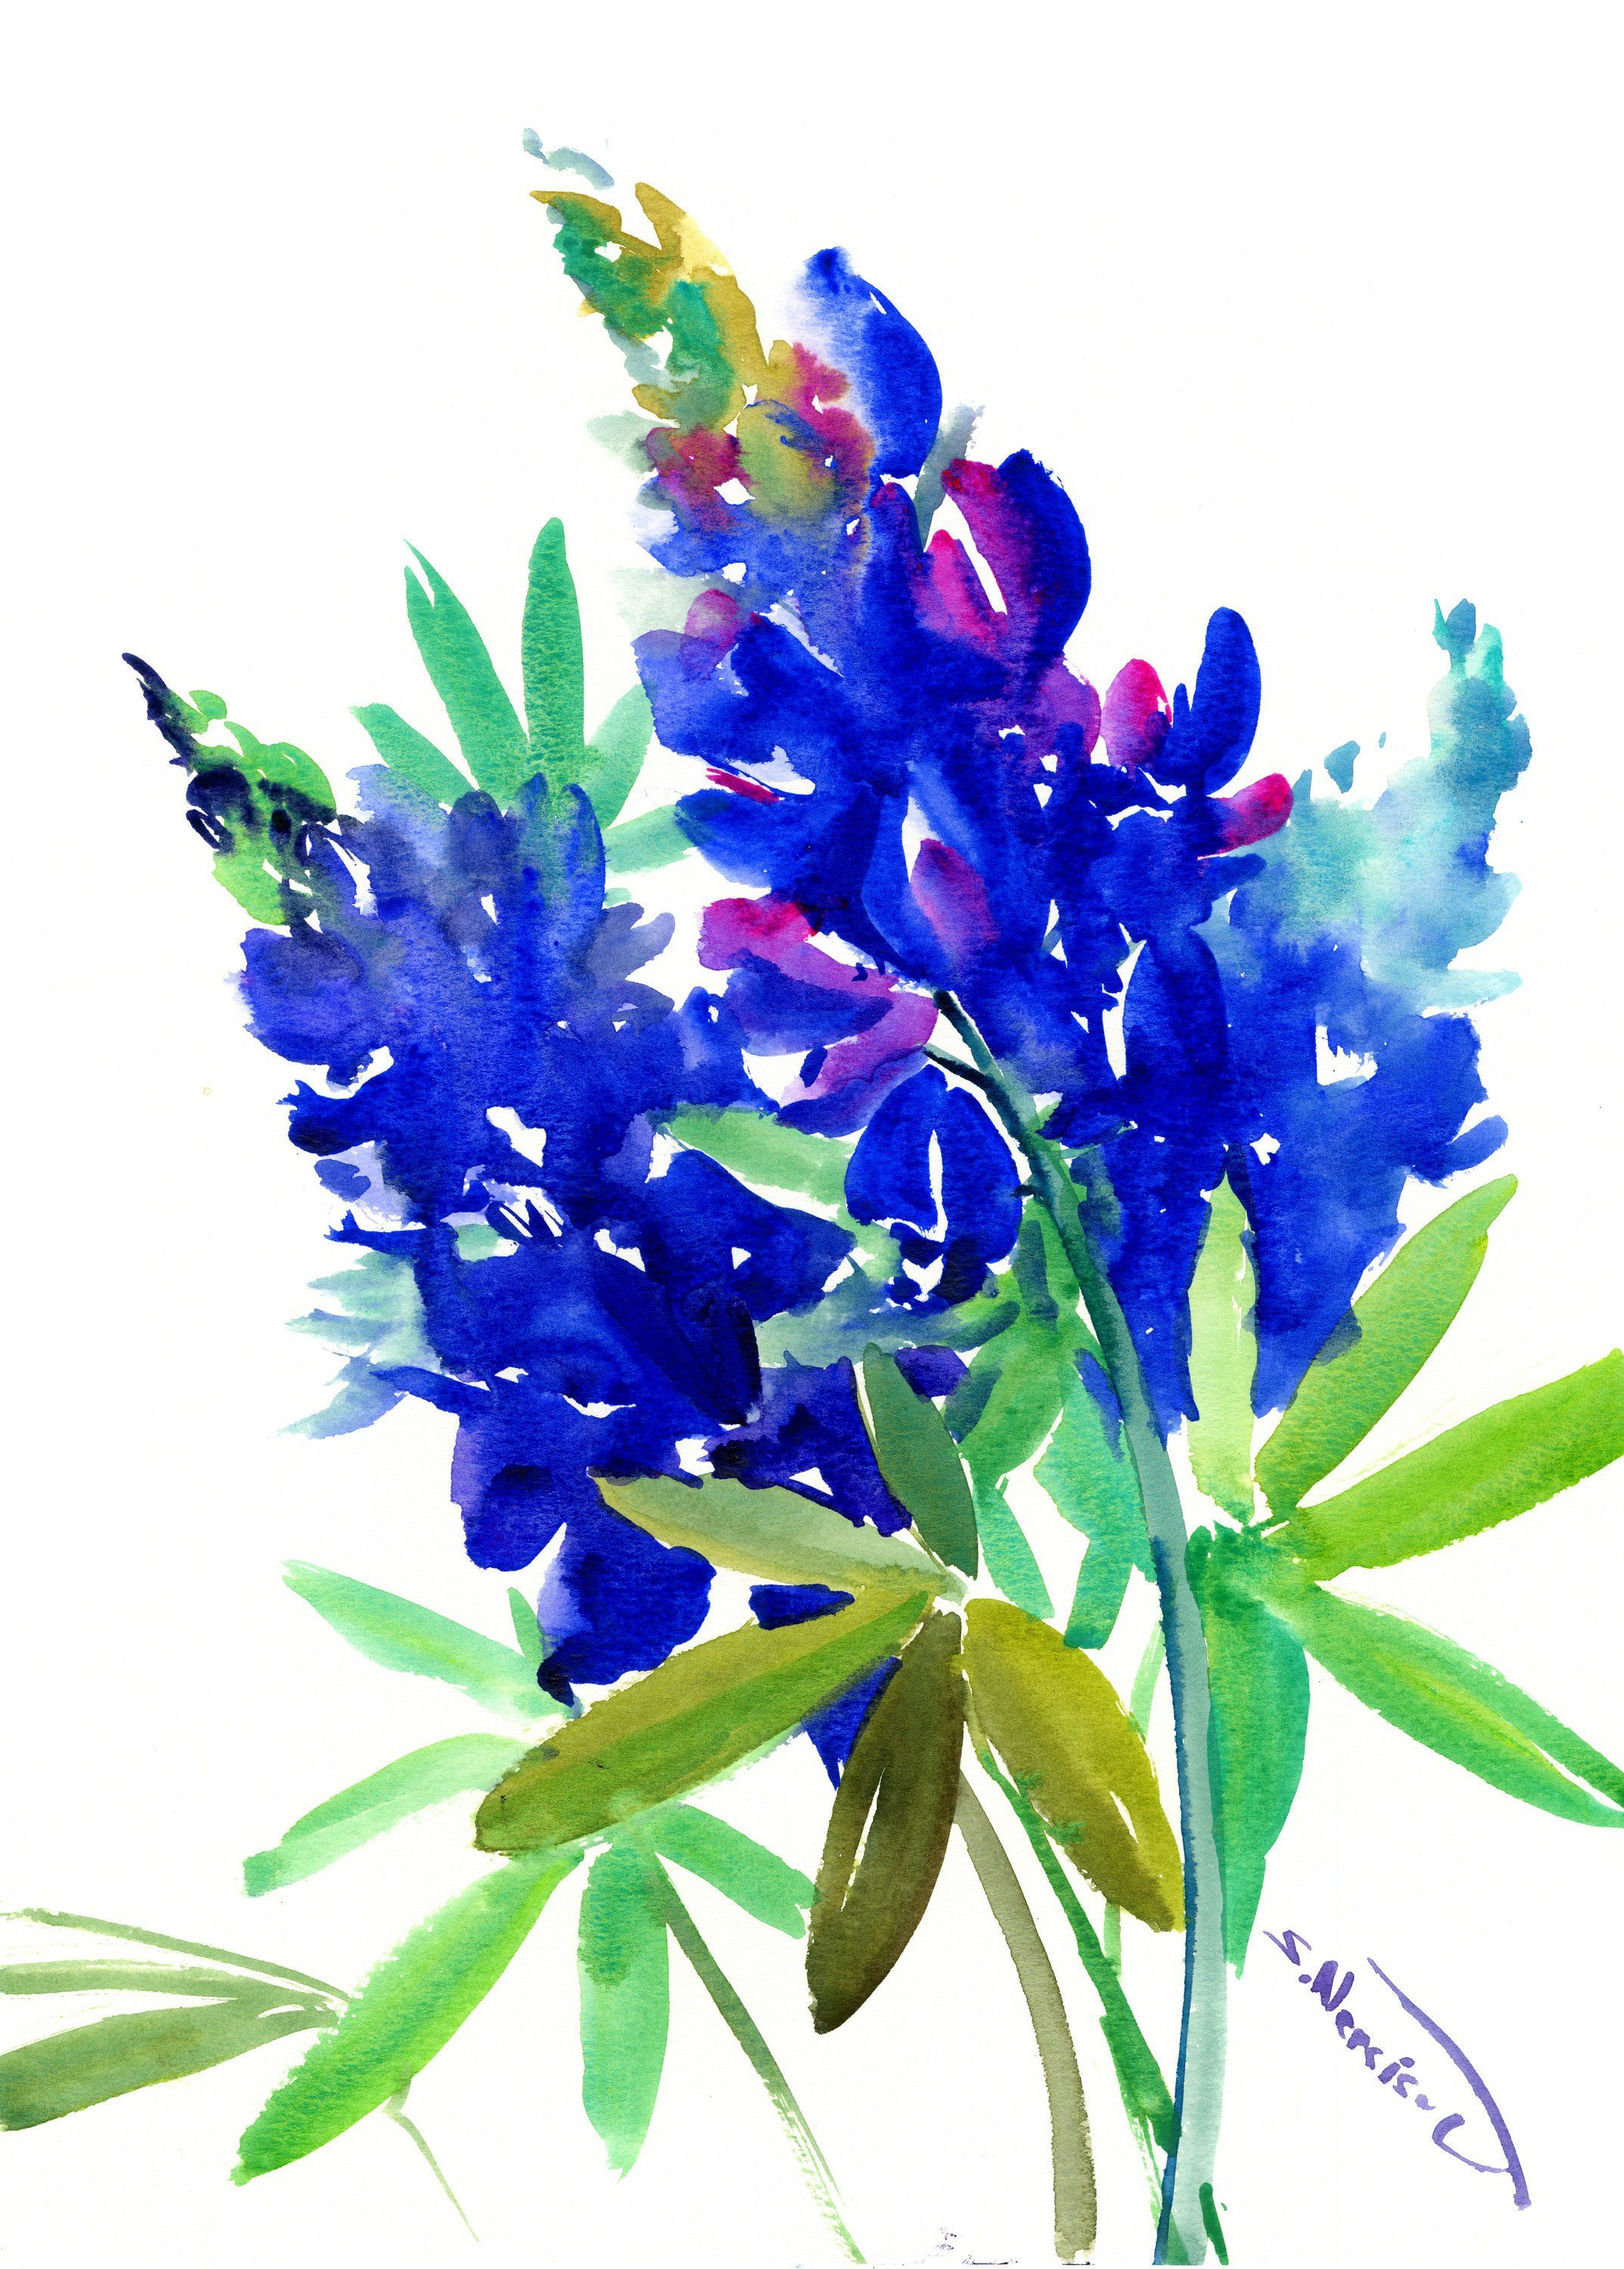 Texas Bluebonnet Flowers Art Painting Blue Flowers Original Watercolor By Originalonly On Etsy Flower Art Painting Blue Bonnets Flower Art